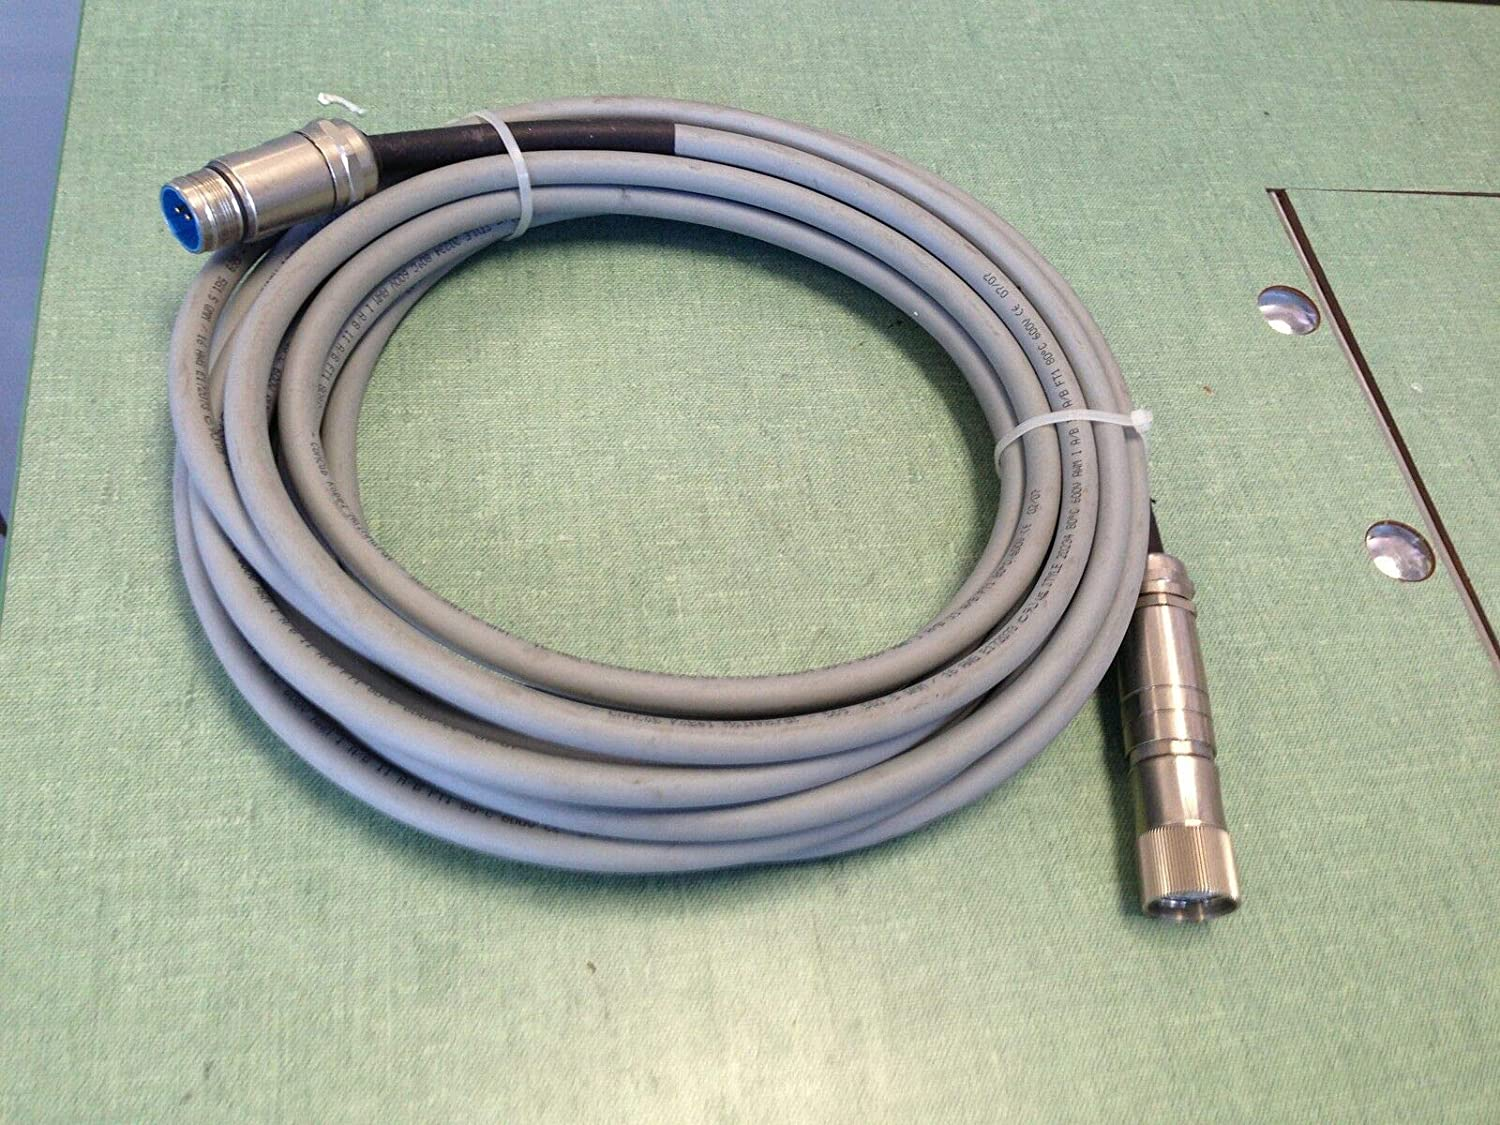 YE-HARMONIC PWR-B W631 W635 FES104326 ROBOTIC CABLE ASSEMBLY CORDSET NEW